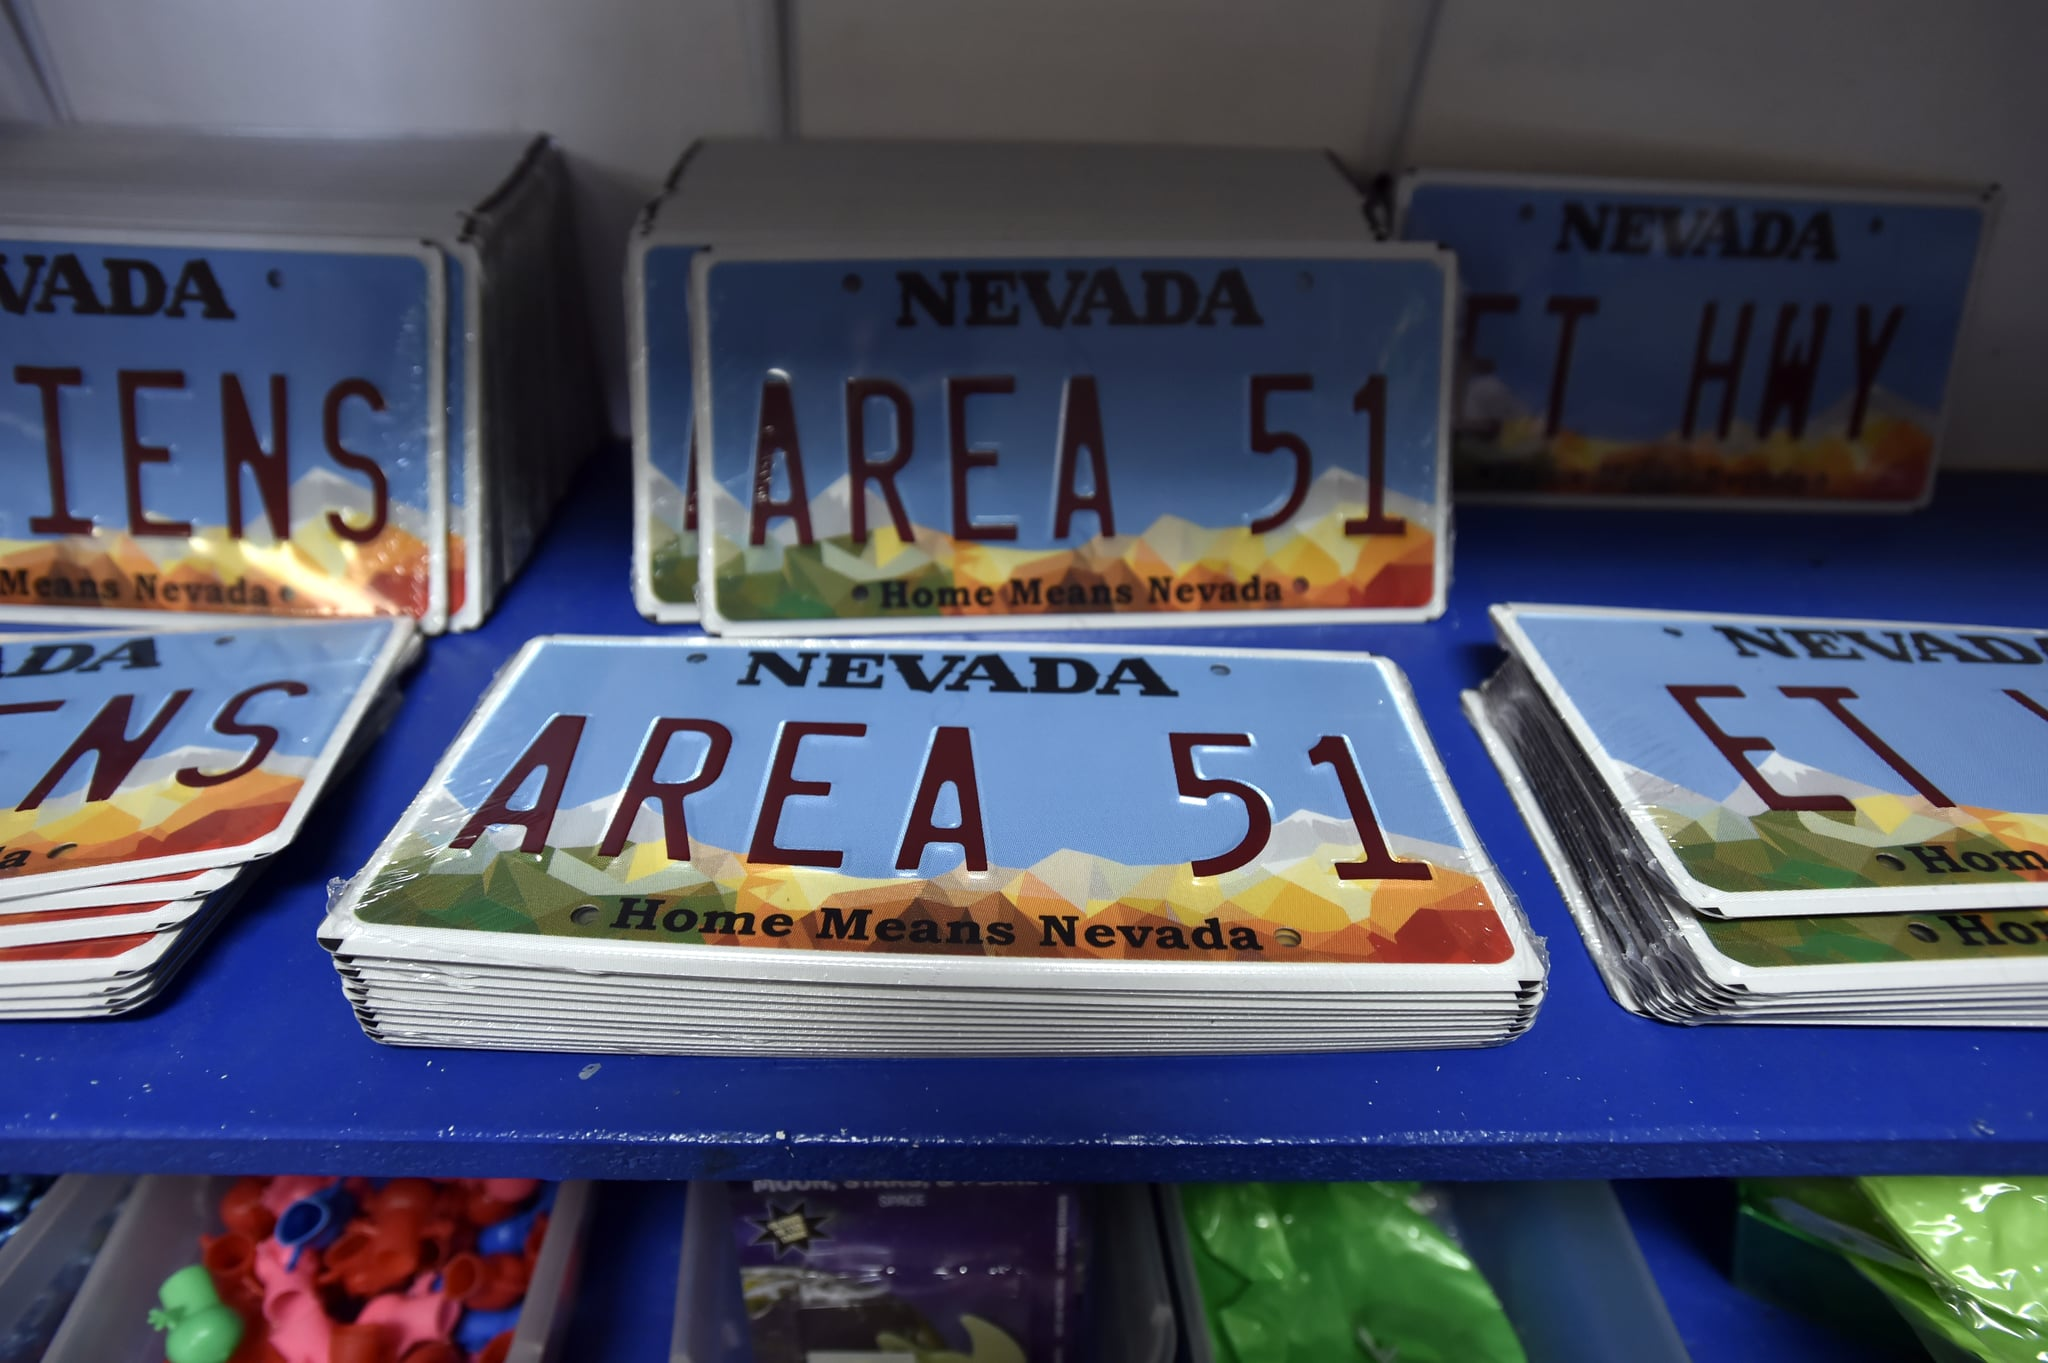 Here's How Netflix's Area 51 Documentary Ties Into the New Facebook Meme